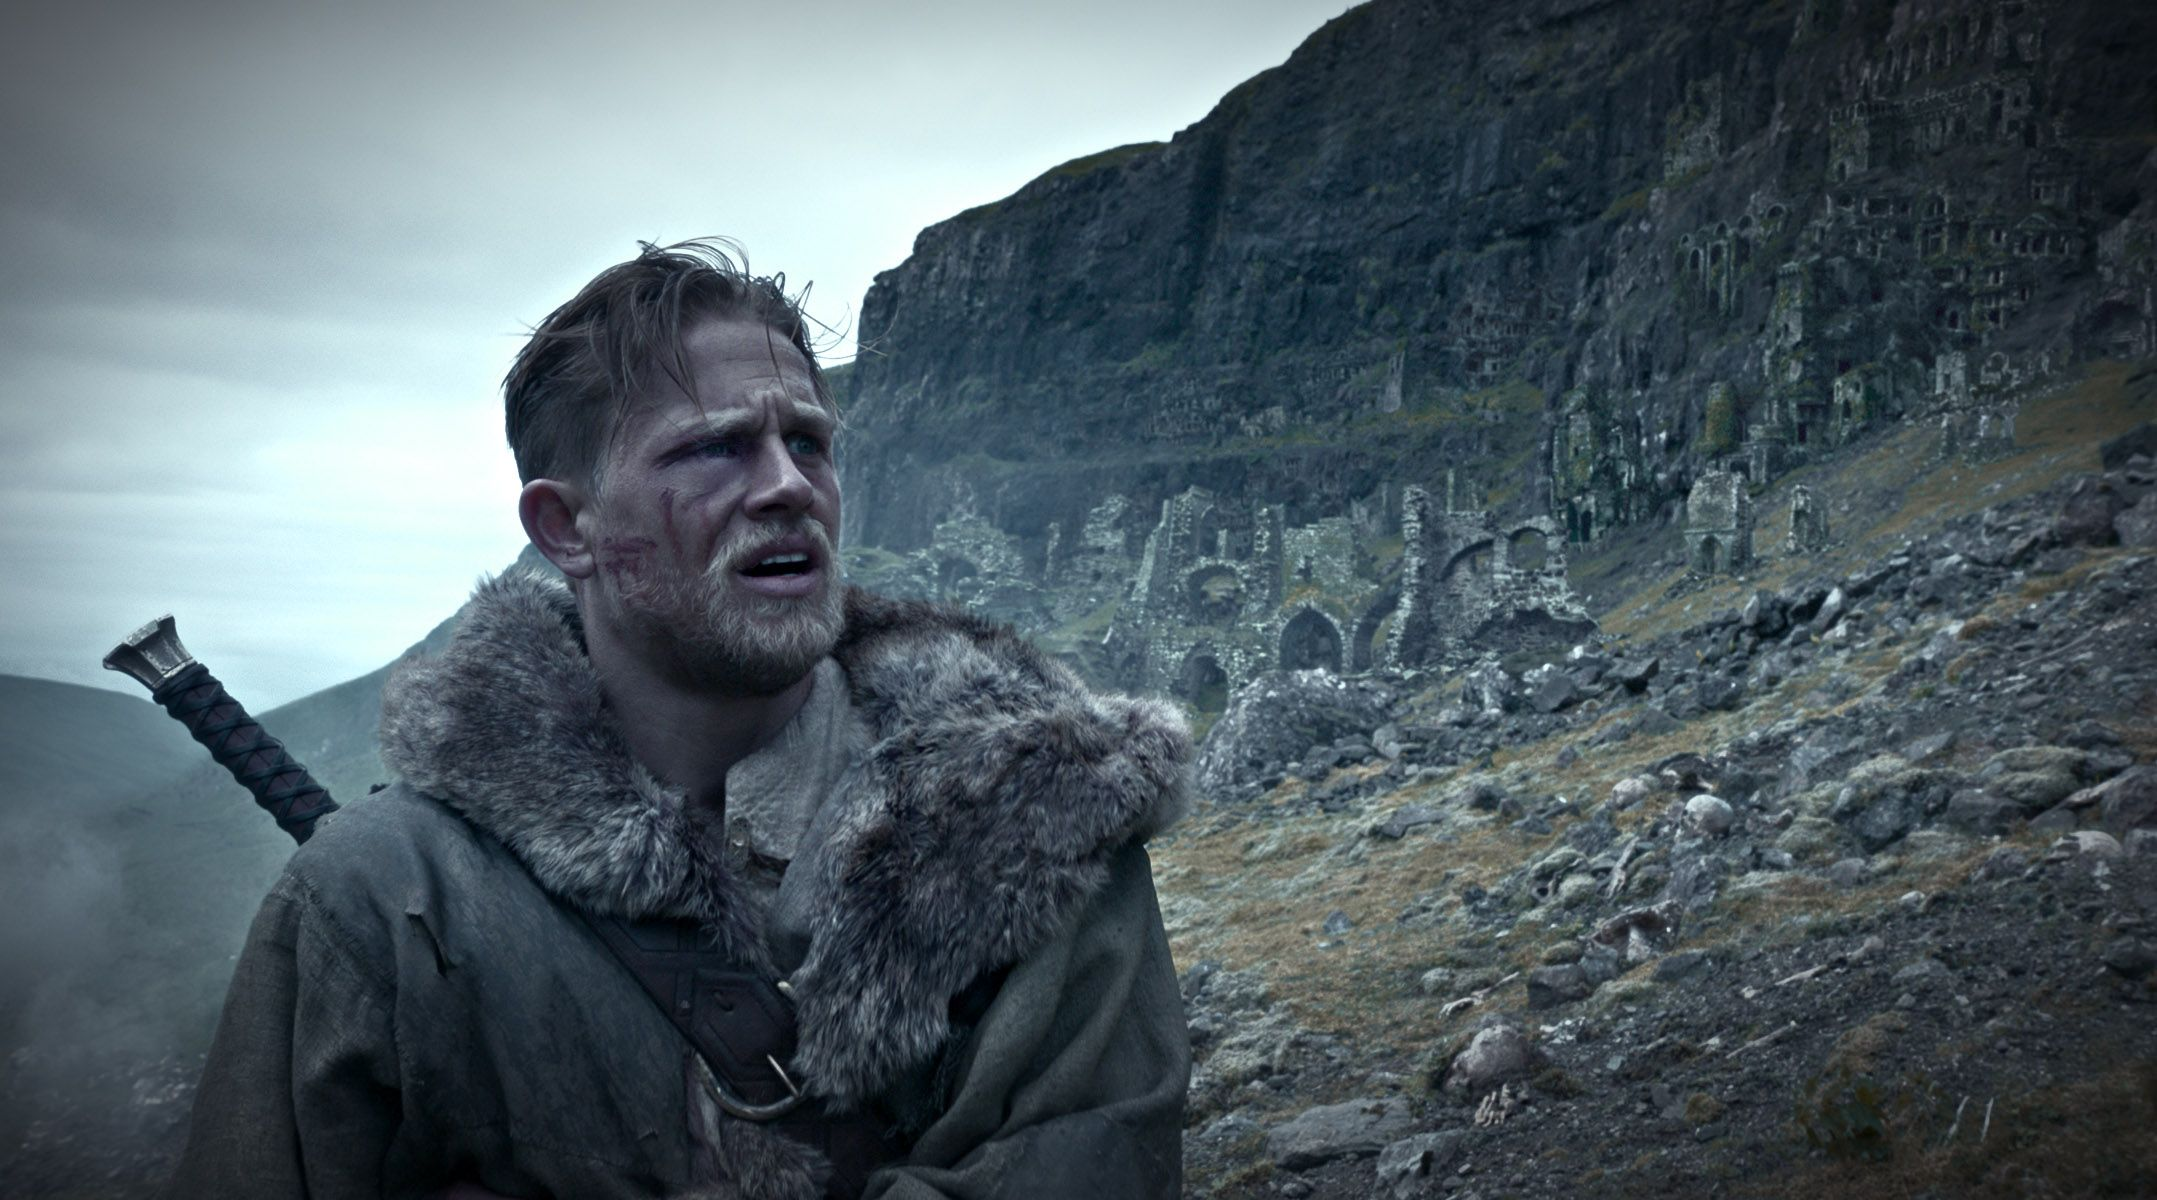 Charlie Hunnam fulfills epic destiny in new King Arthur trailer